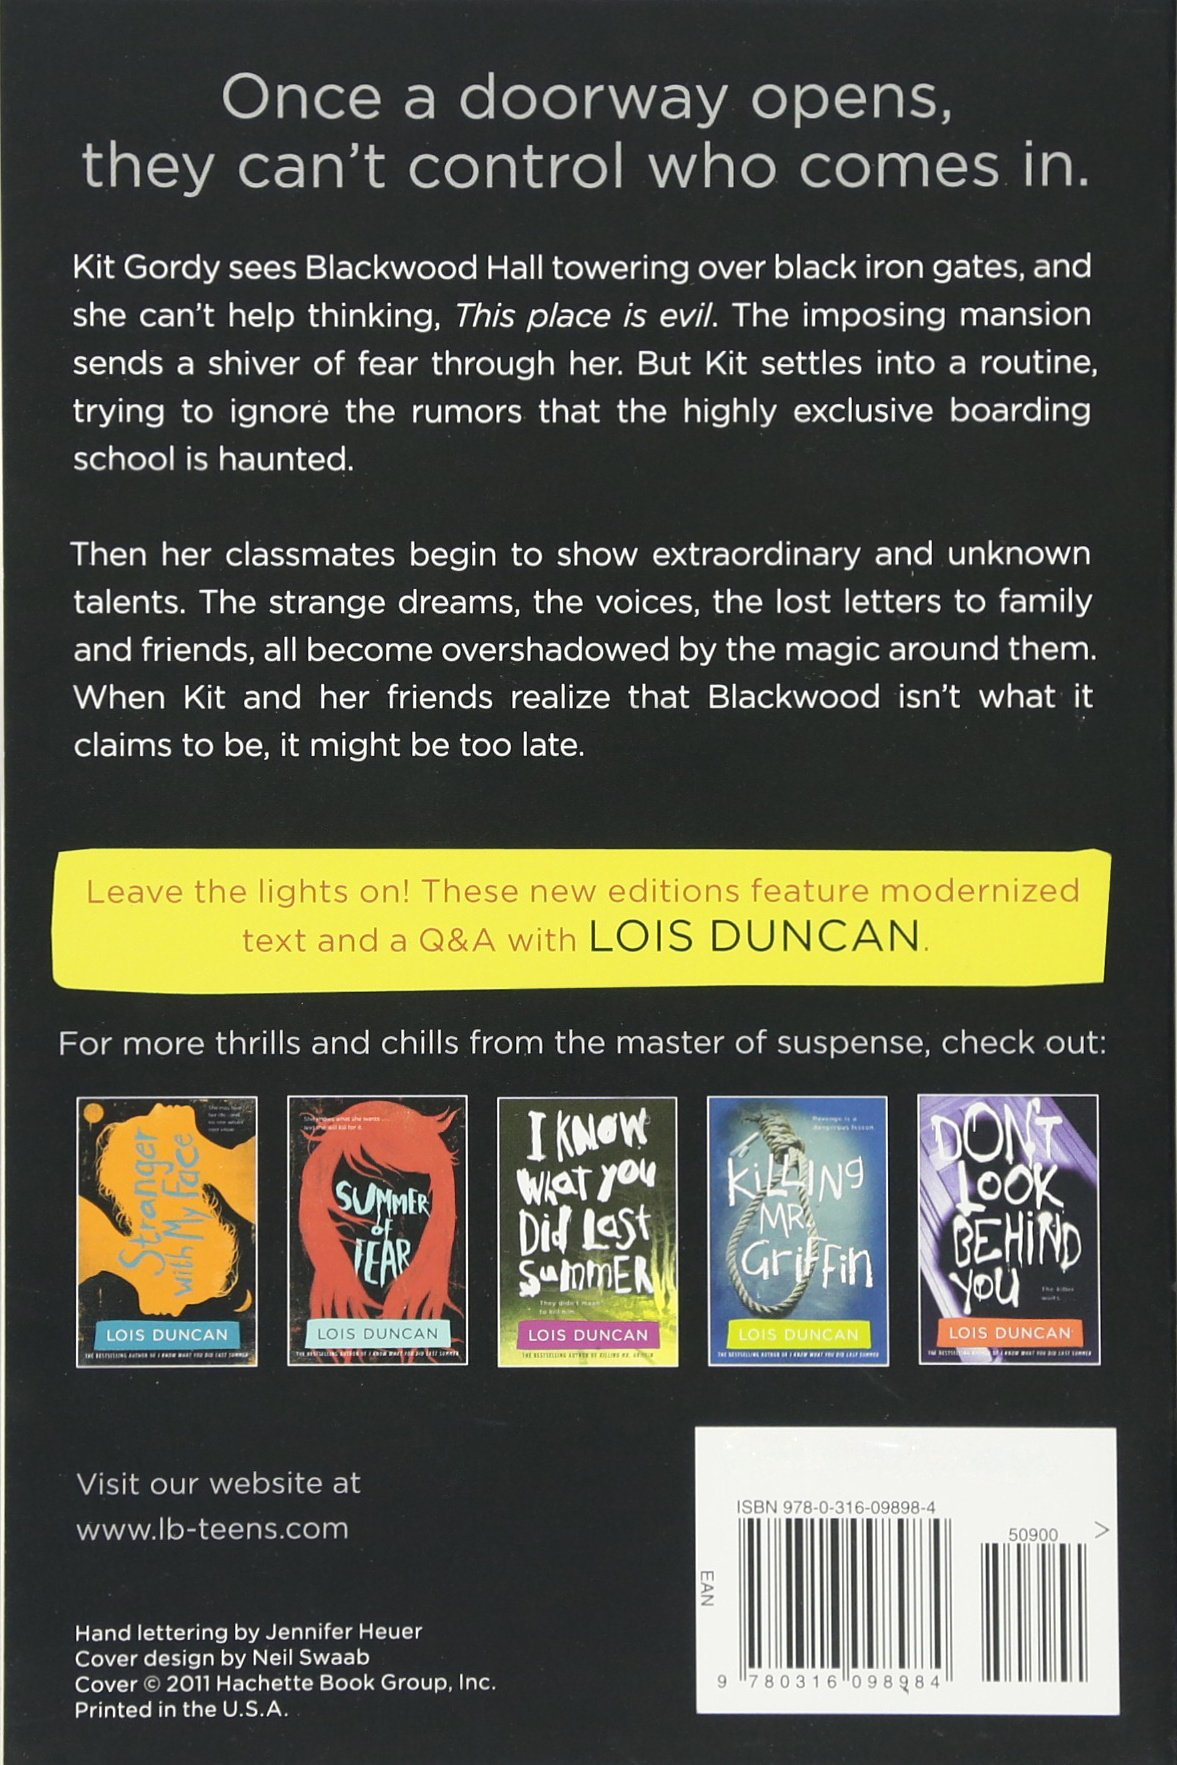 Down a Dark Hall by Little, Brown Books for Young Readers (Image #2)